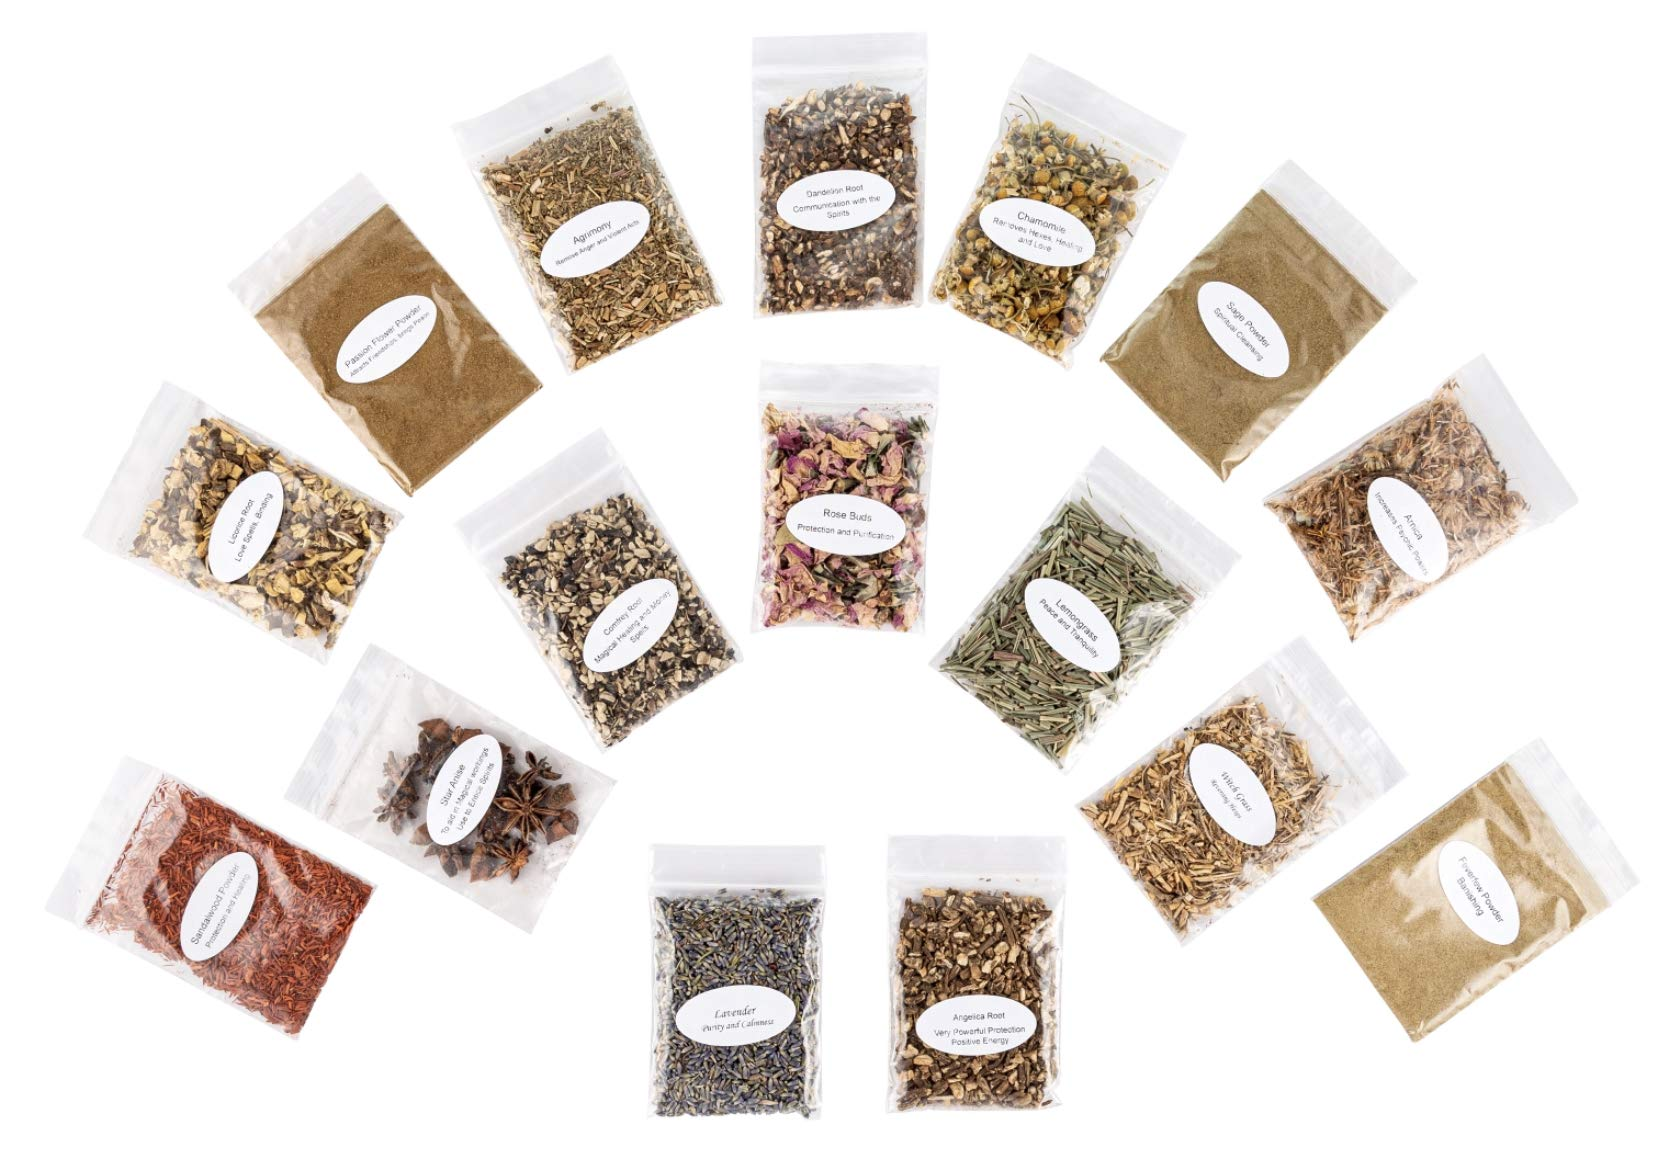 Enchanted Herbal Ritual Collection. Consisting of Powders, Herbs, Roots and Flowers